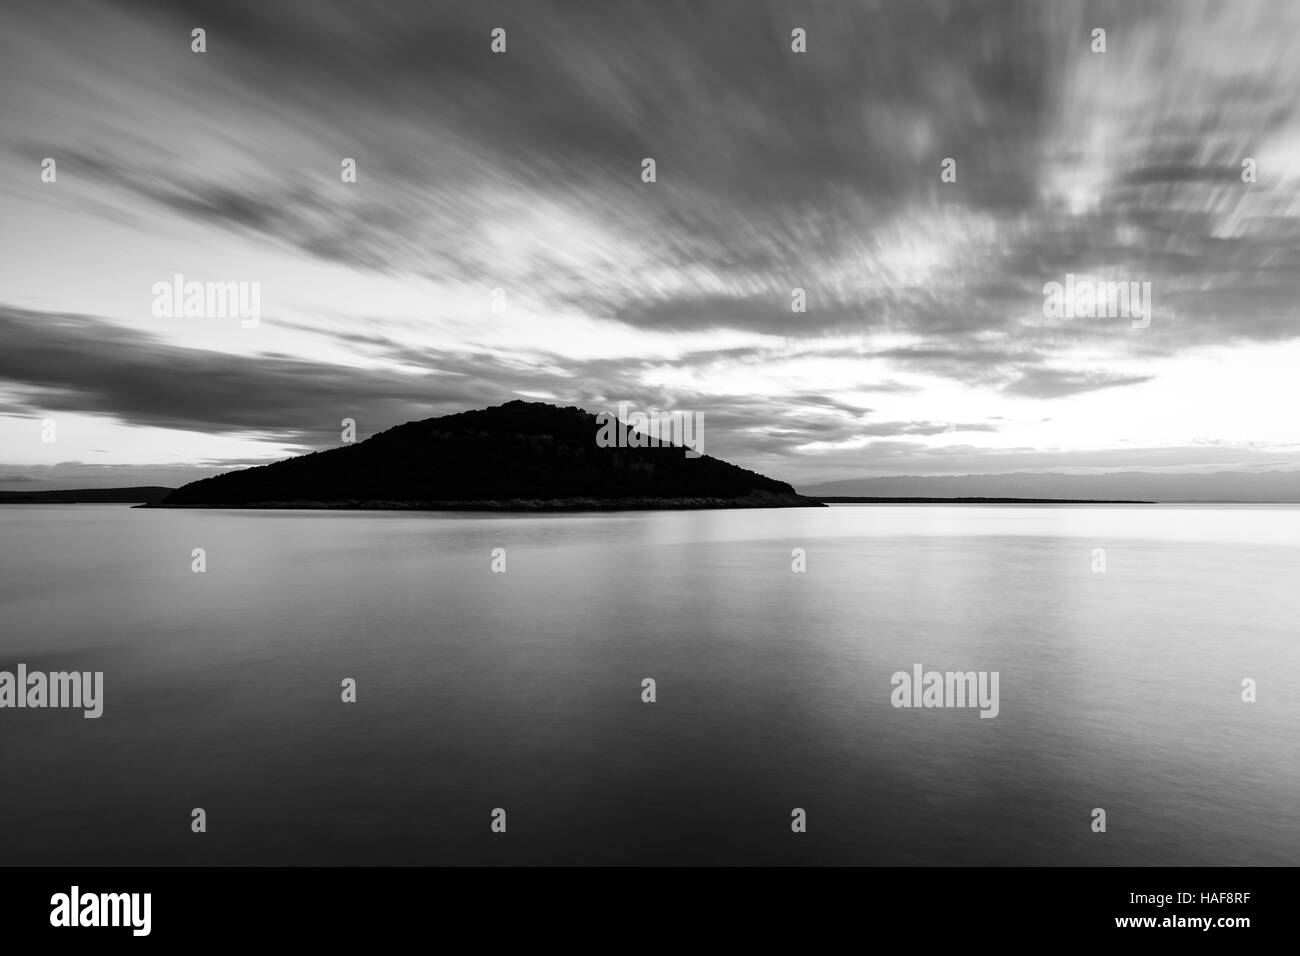 View across to Veli Osir Island, Losinj Island, Croatia. Seen from Osiri Beach at Cunski, a small village that lies - Stock Image